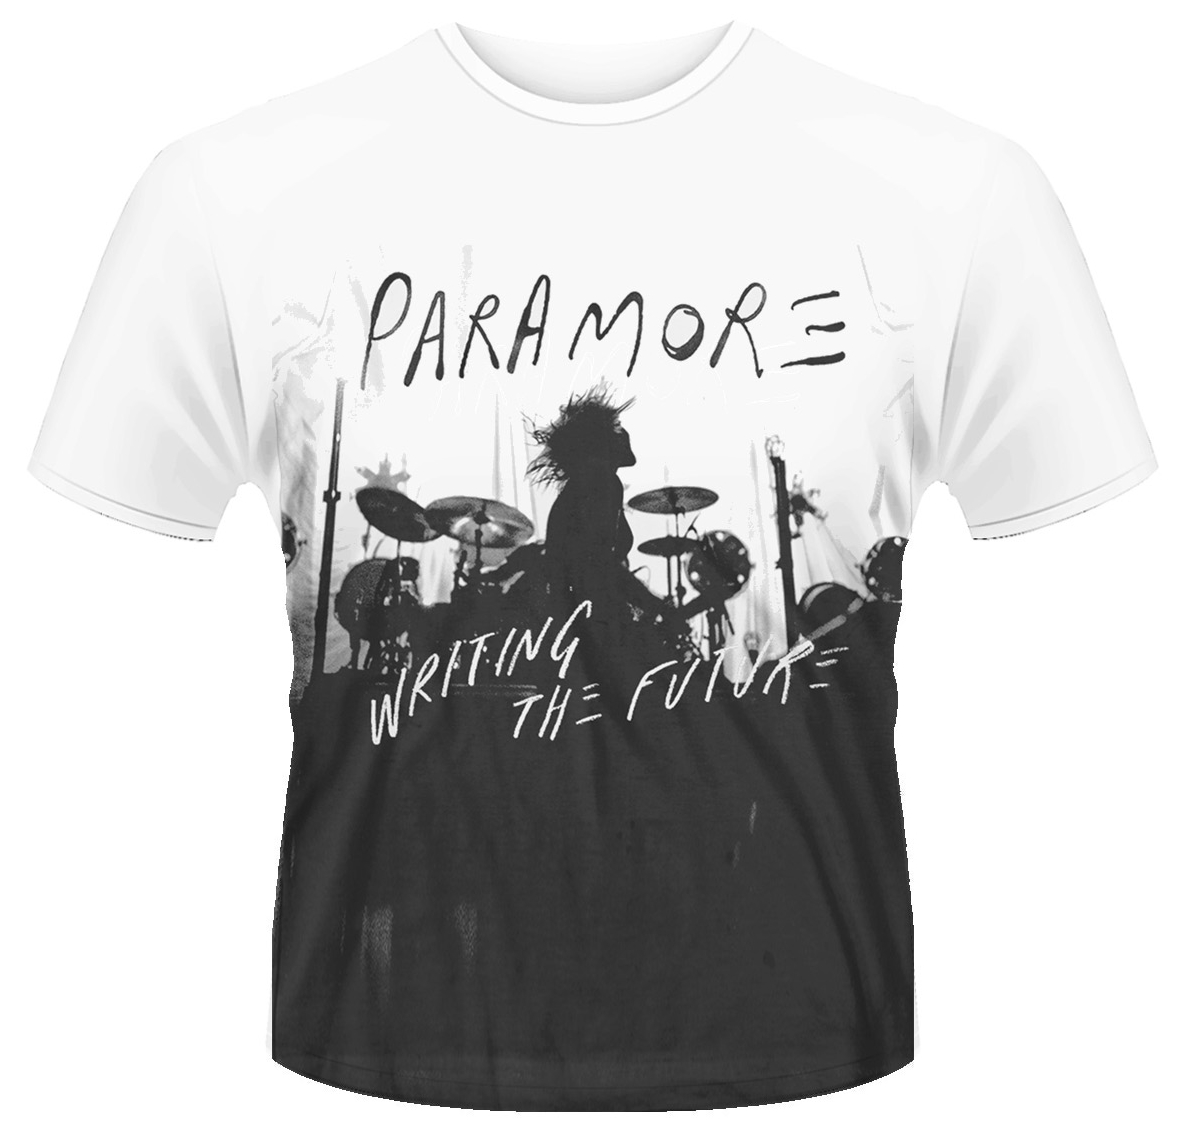 Paramore 'Writing The Future Silhouette' T-Shirt - NEW ... Paramore Mersch Nederland